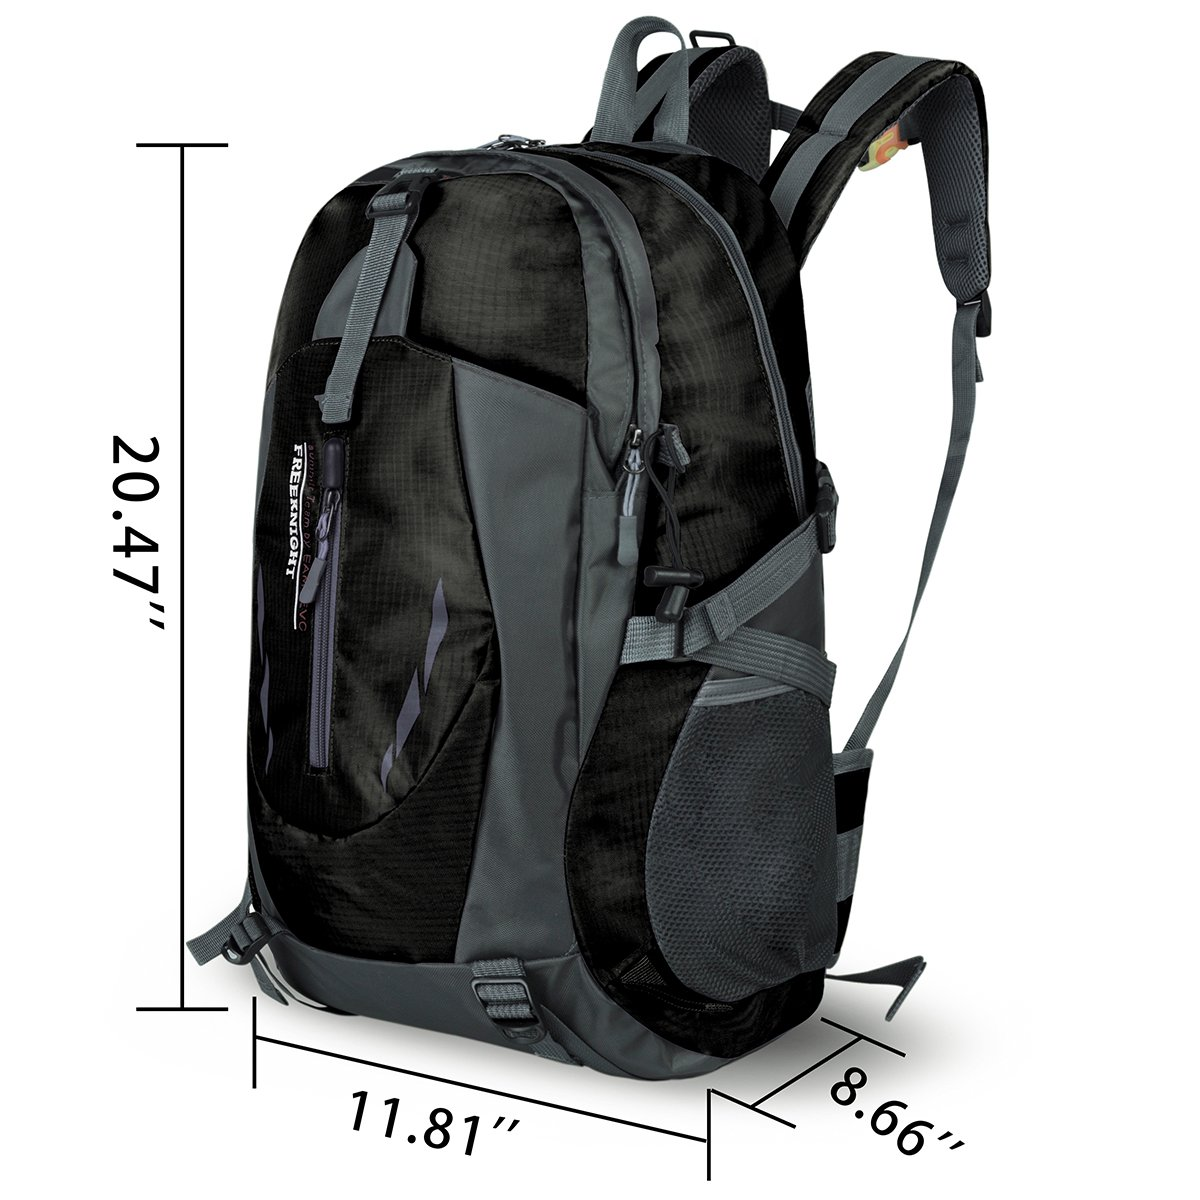 Water Resistant Sports Backpack Lightweight School Bag for Travel Hiking Climbing Camping Mountainneering Daypack Unisex Size 11.8\'\'x 8.6\'\'x 20.4\'\' (Black)